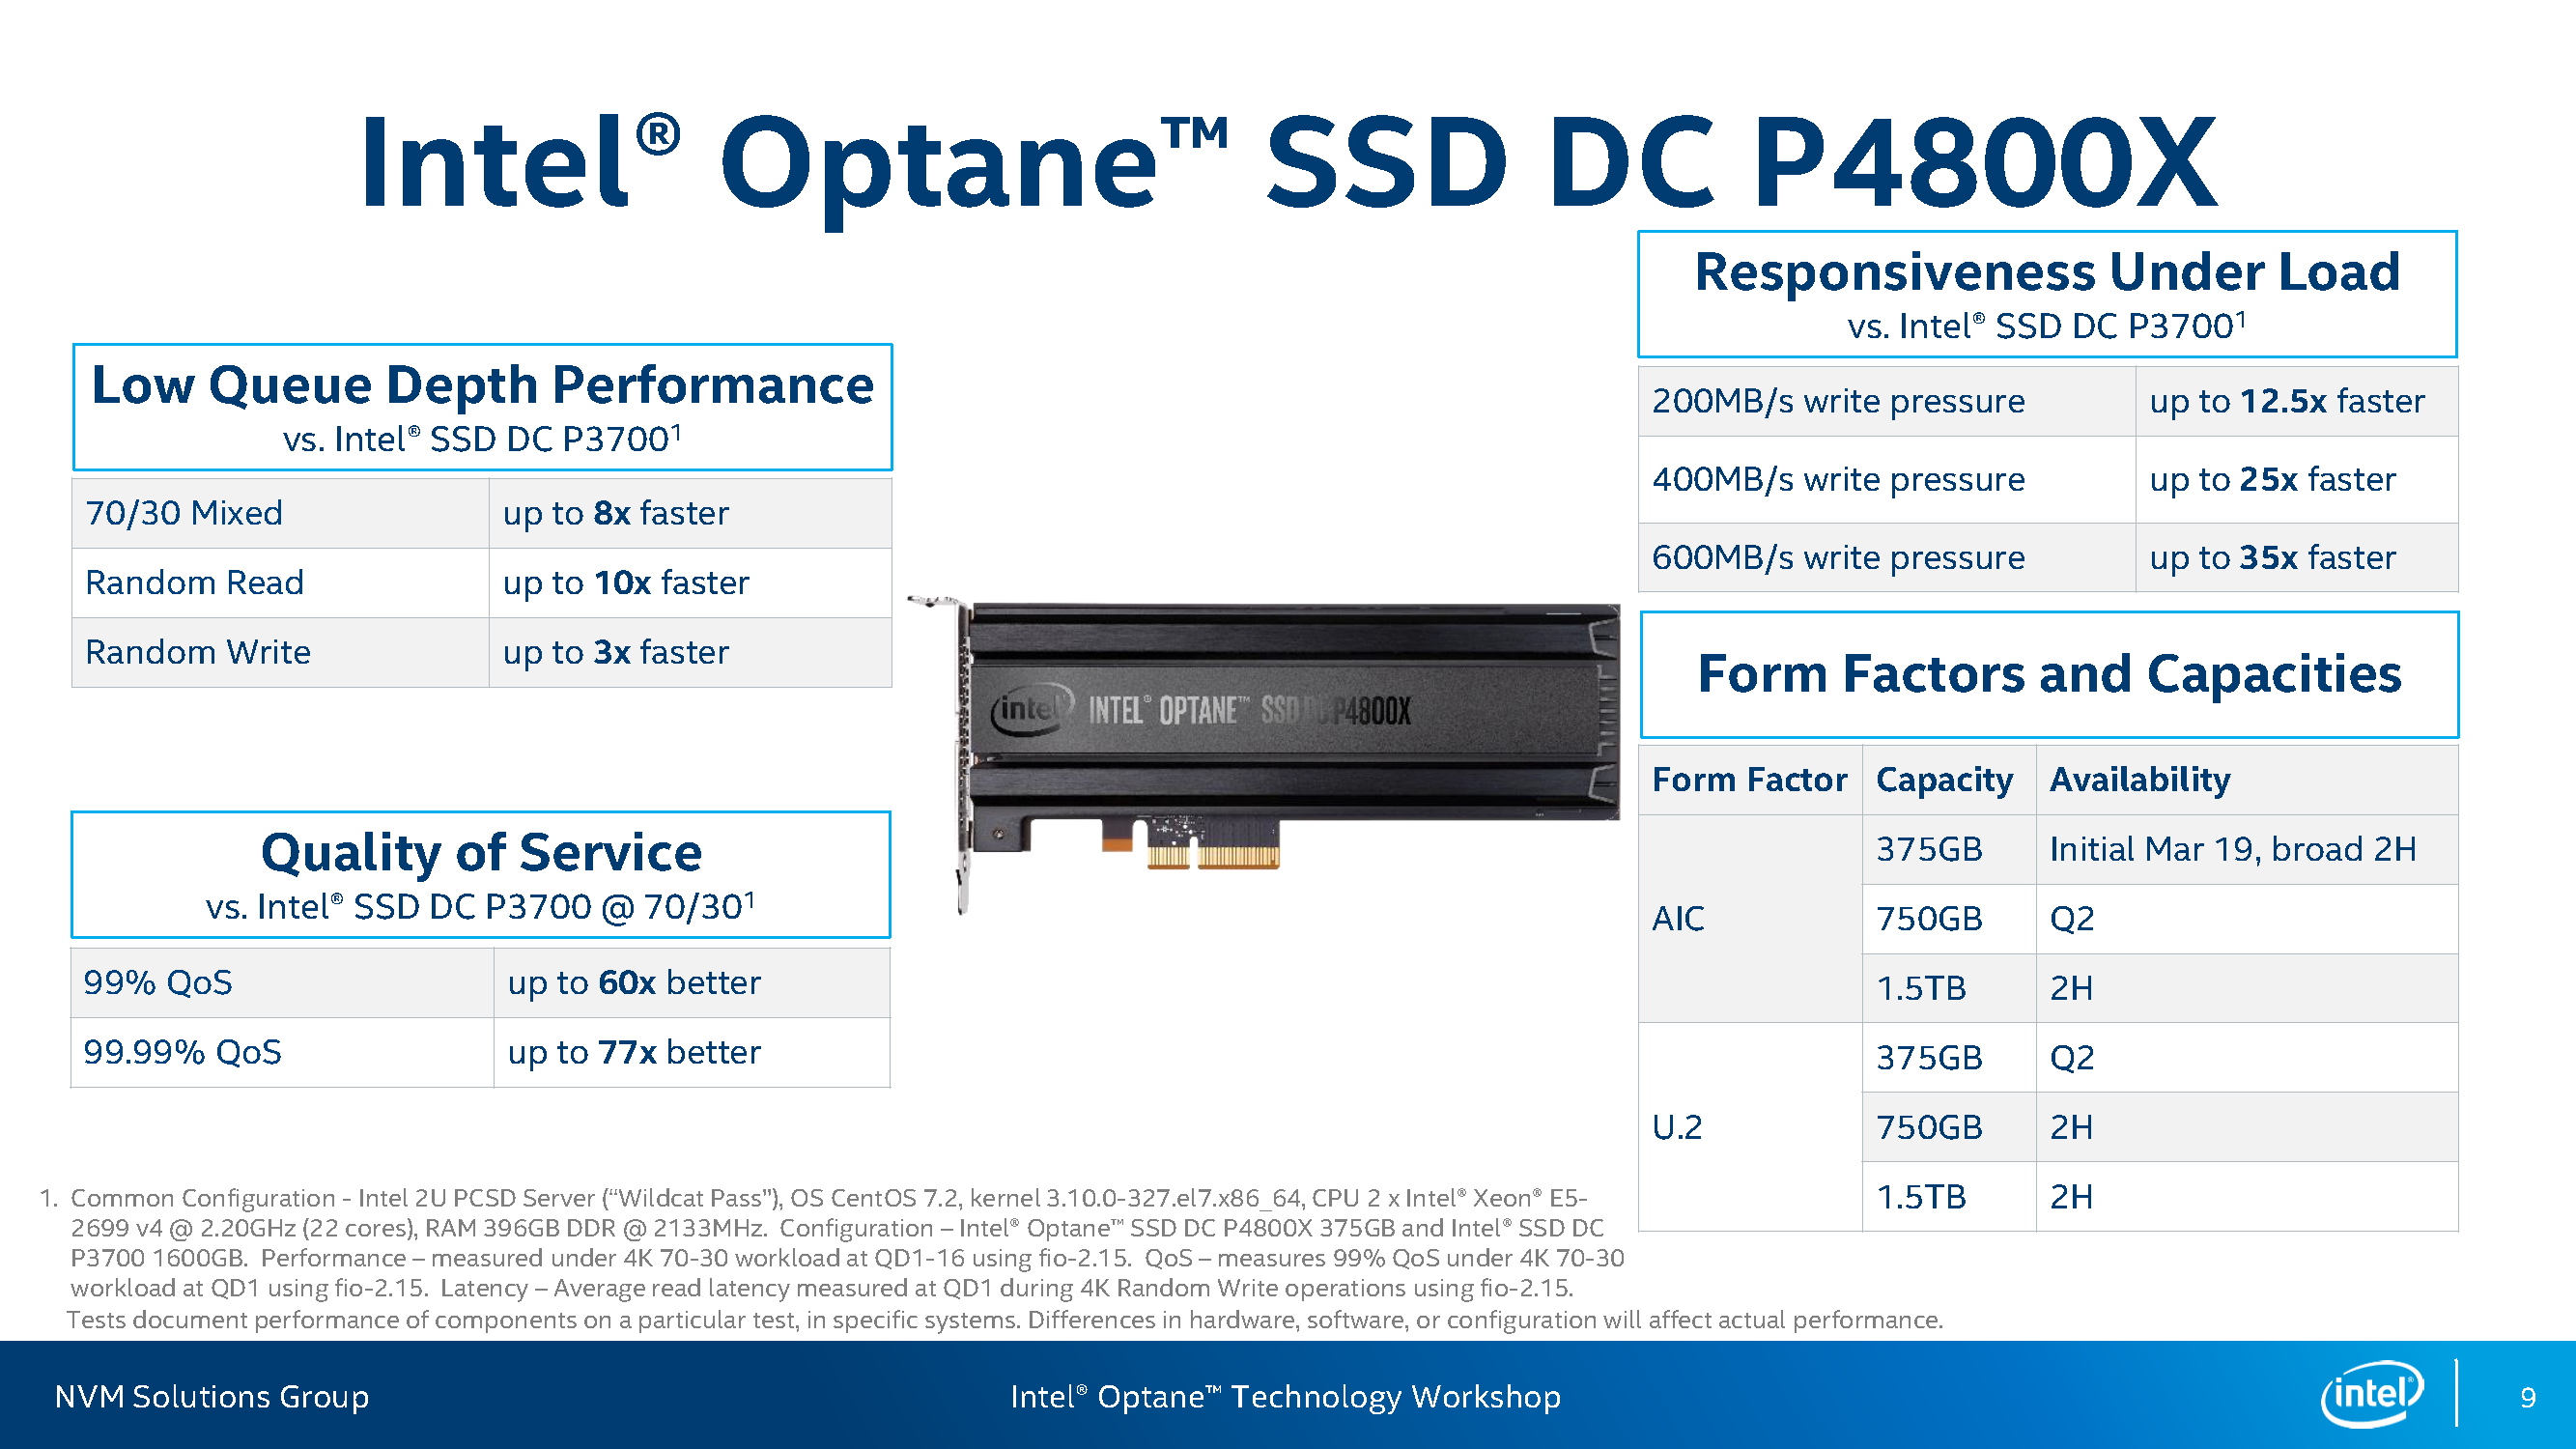 Intel Optane SSD DC P4800X 375GB model begins to ship